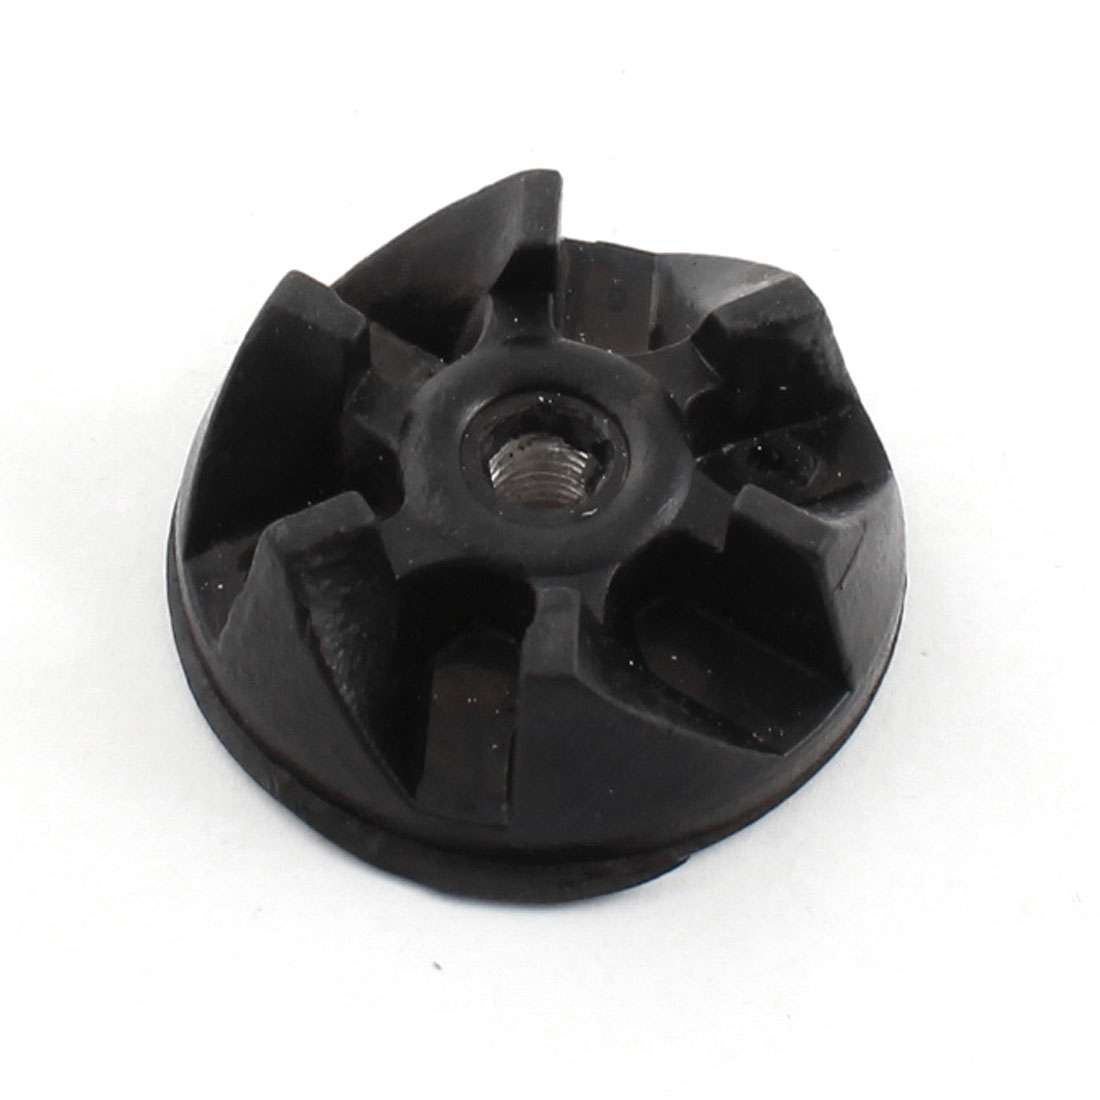 Electric Blender 6T General Purpose Black Rubber Coupler Drive Clutch Adapter 36mm Dia 5.5mm Thread